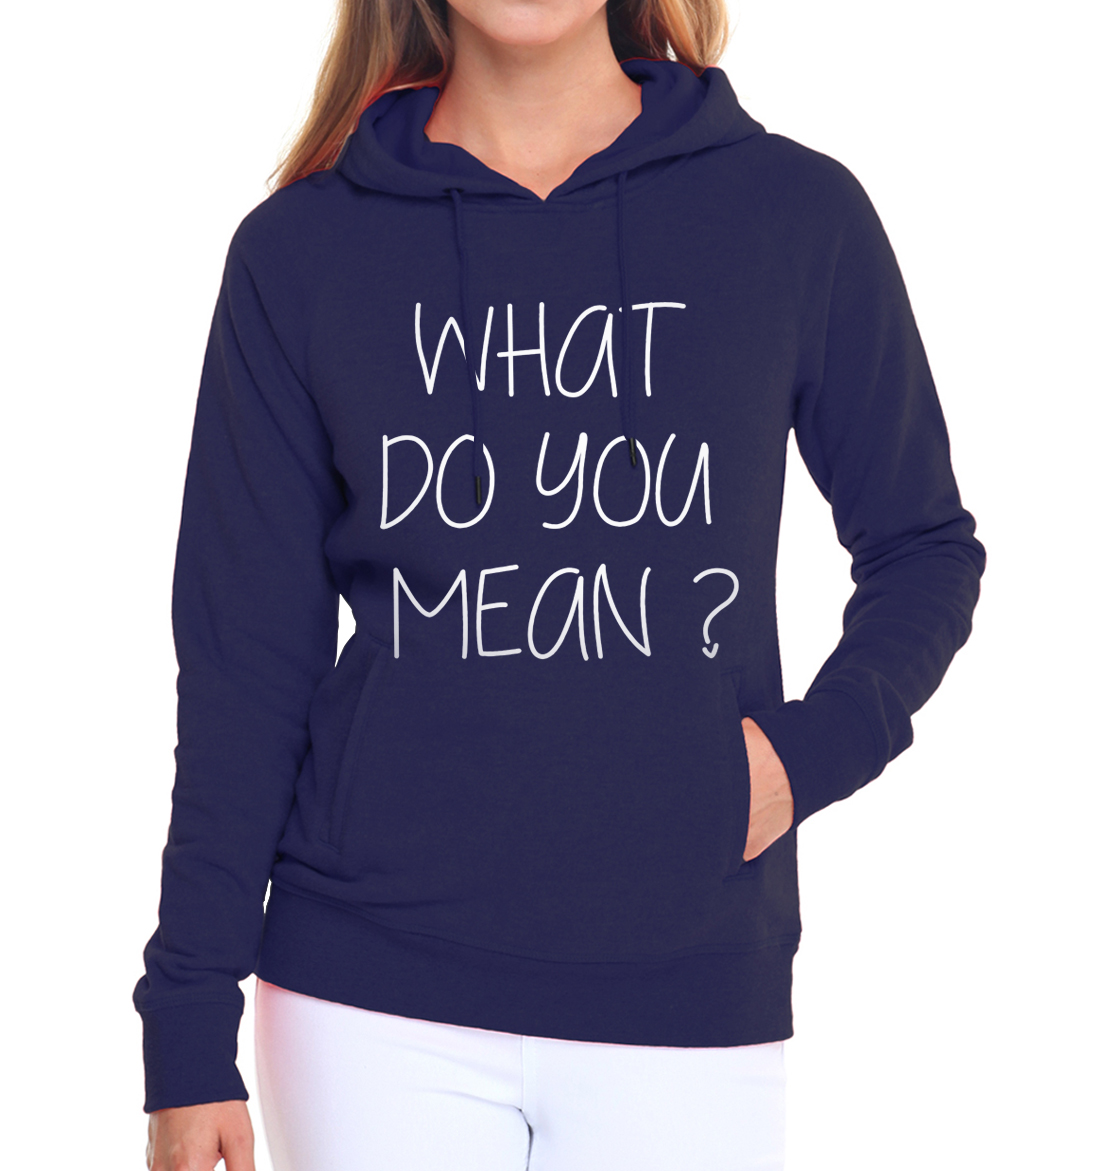 hip-hop sweatshirts 2019 fleece style funny hooded What Do You Mean letters print women hoodies harajuku pink brand tracksuits